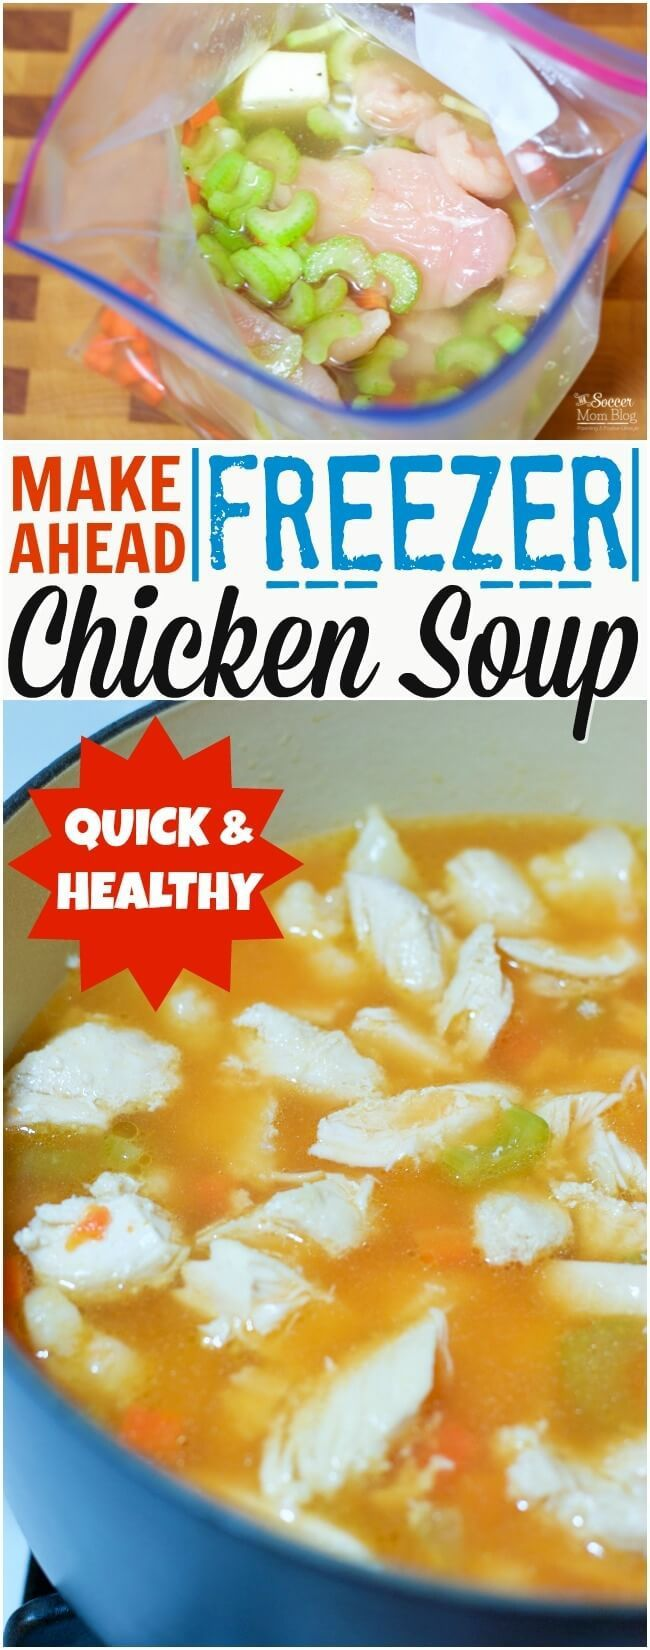 5-Minute Freezer Chicken Soup for Easy Meal Prep | Recipe ...